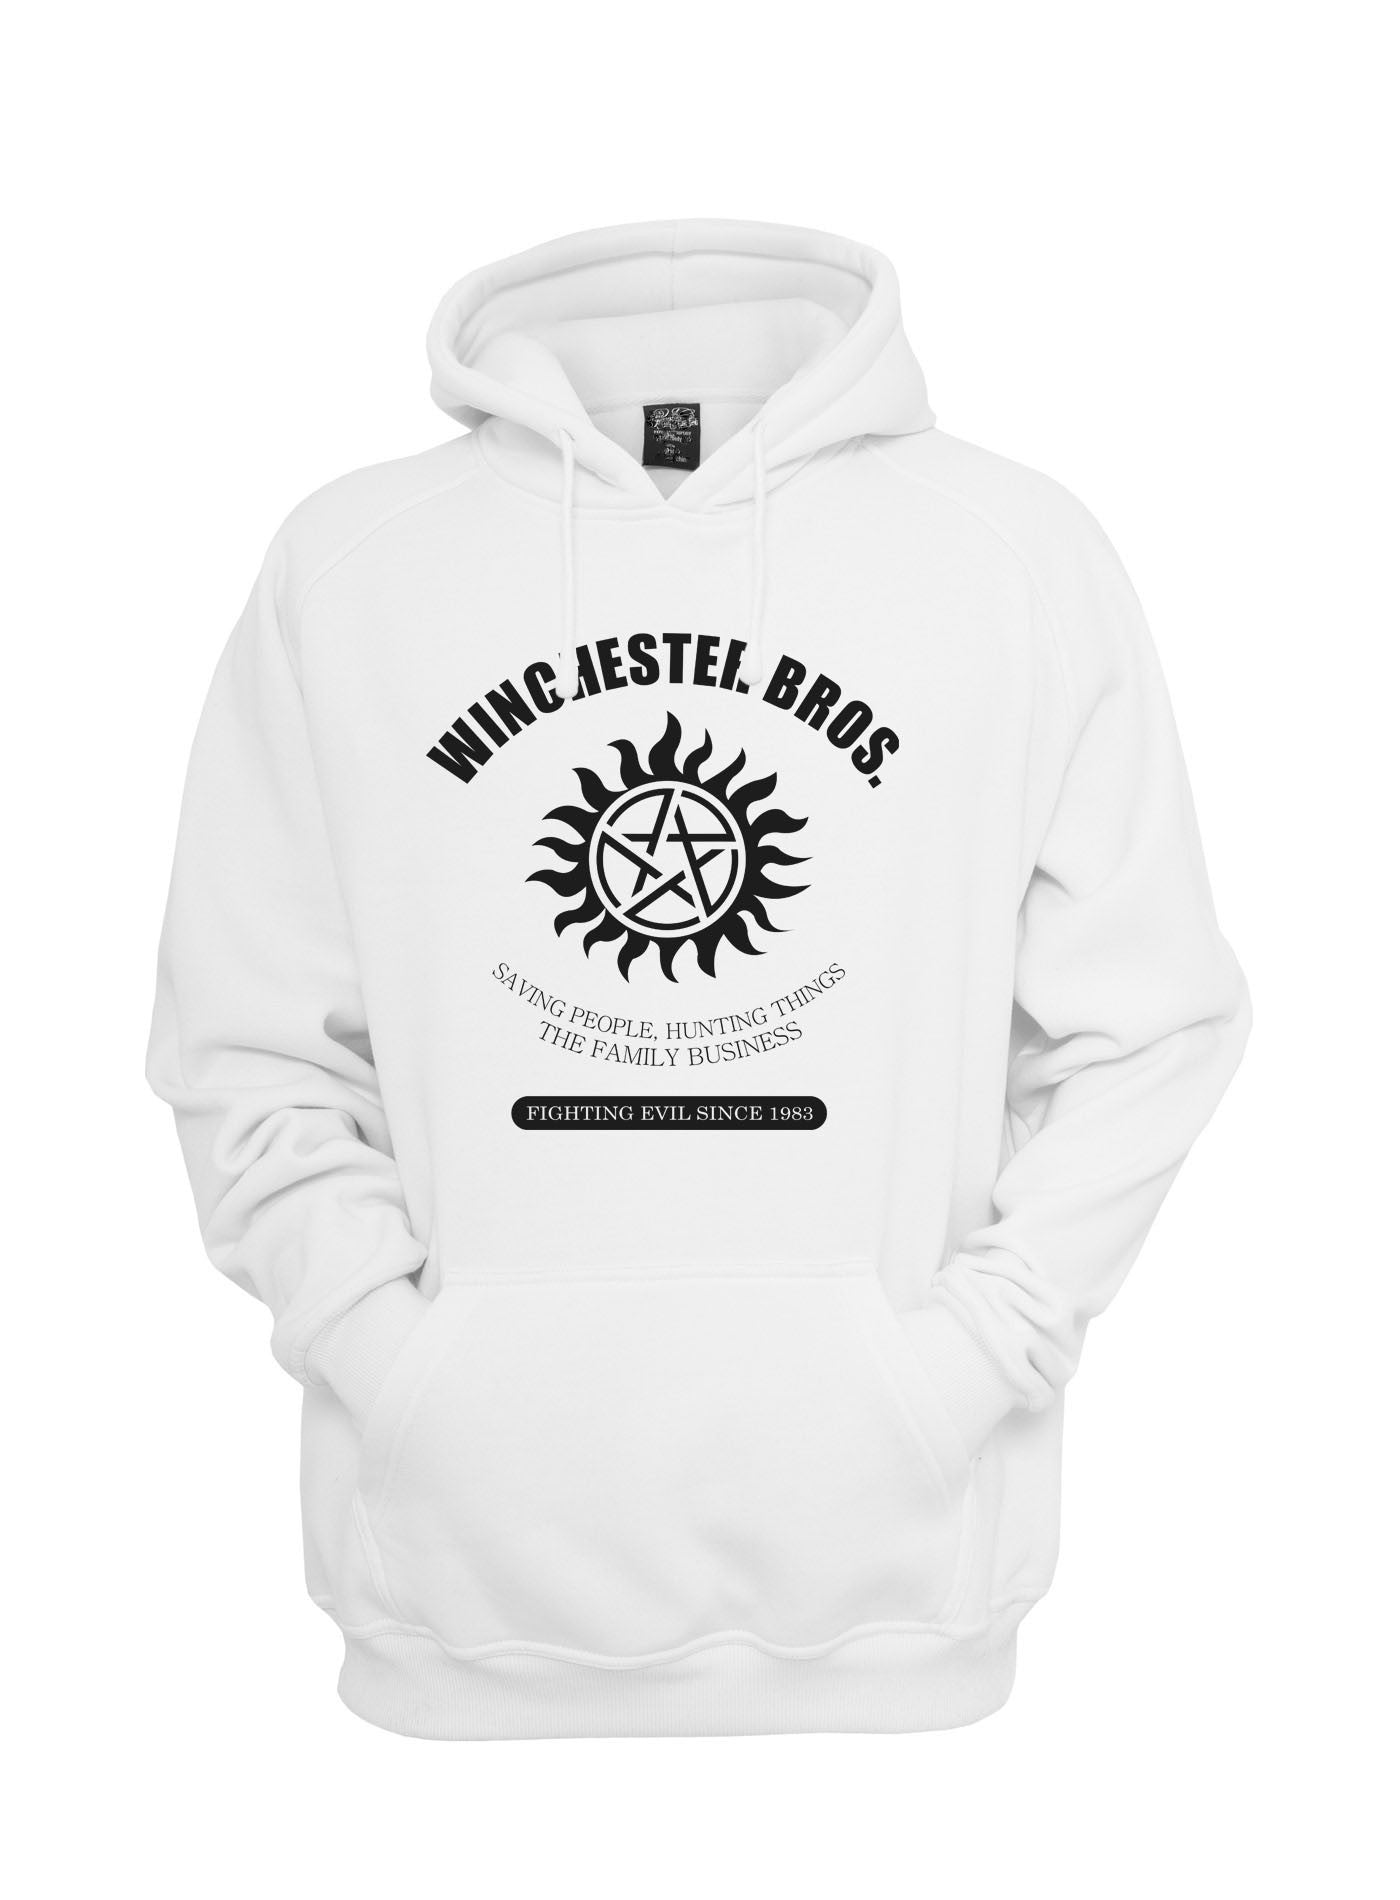 a884f42fb496f 36.00 USD Winchester Saving People Hunting Things The Family Business  Unisex Pullover Hoodie - Meh.